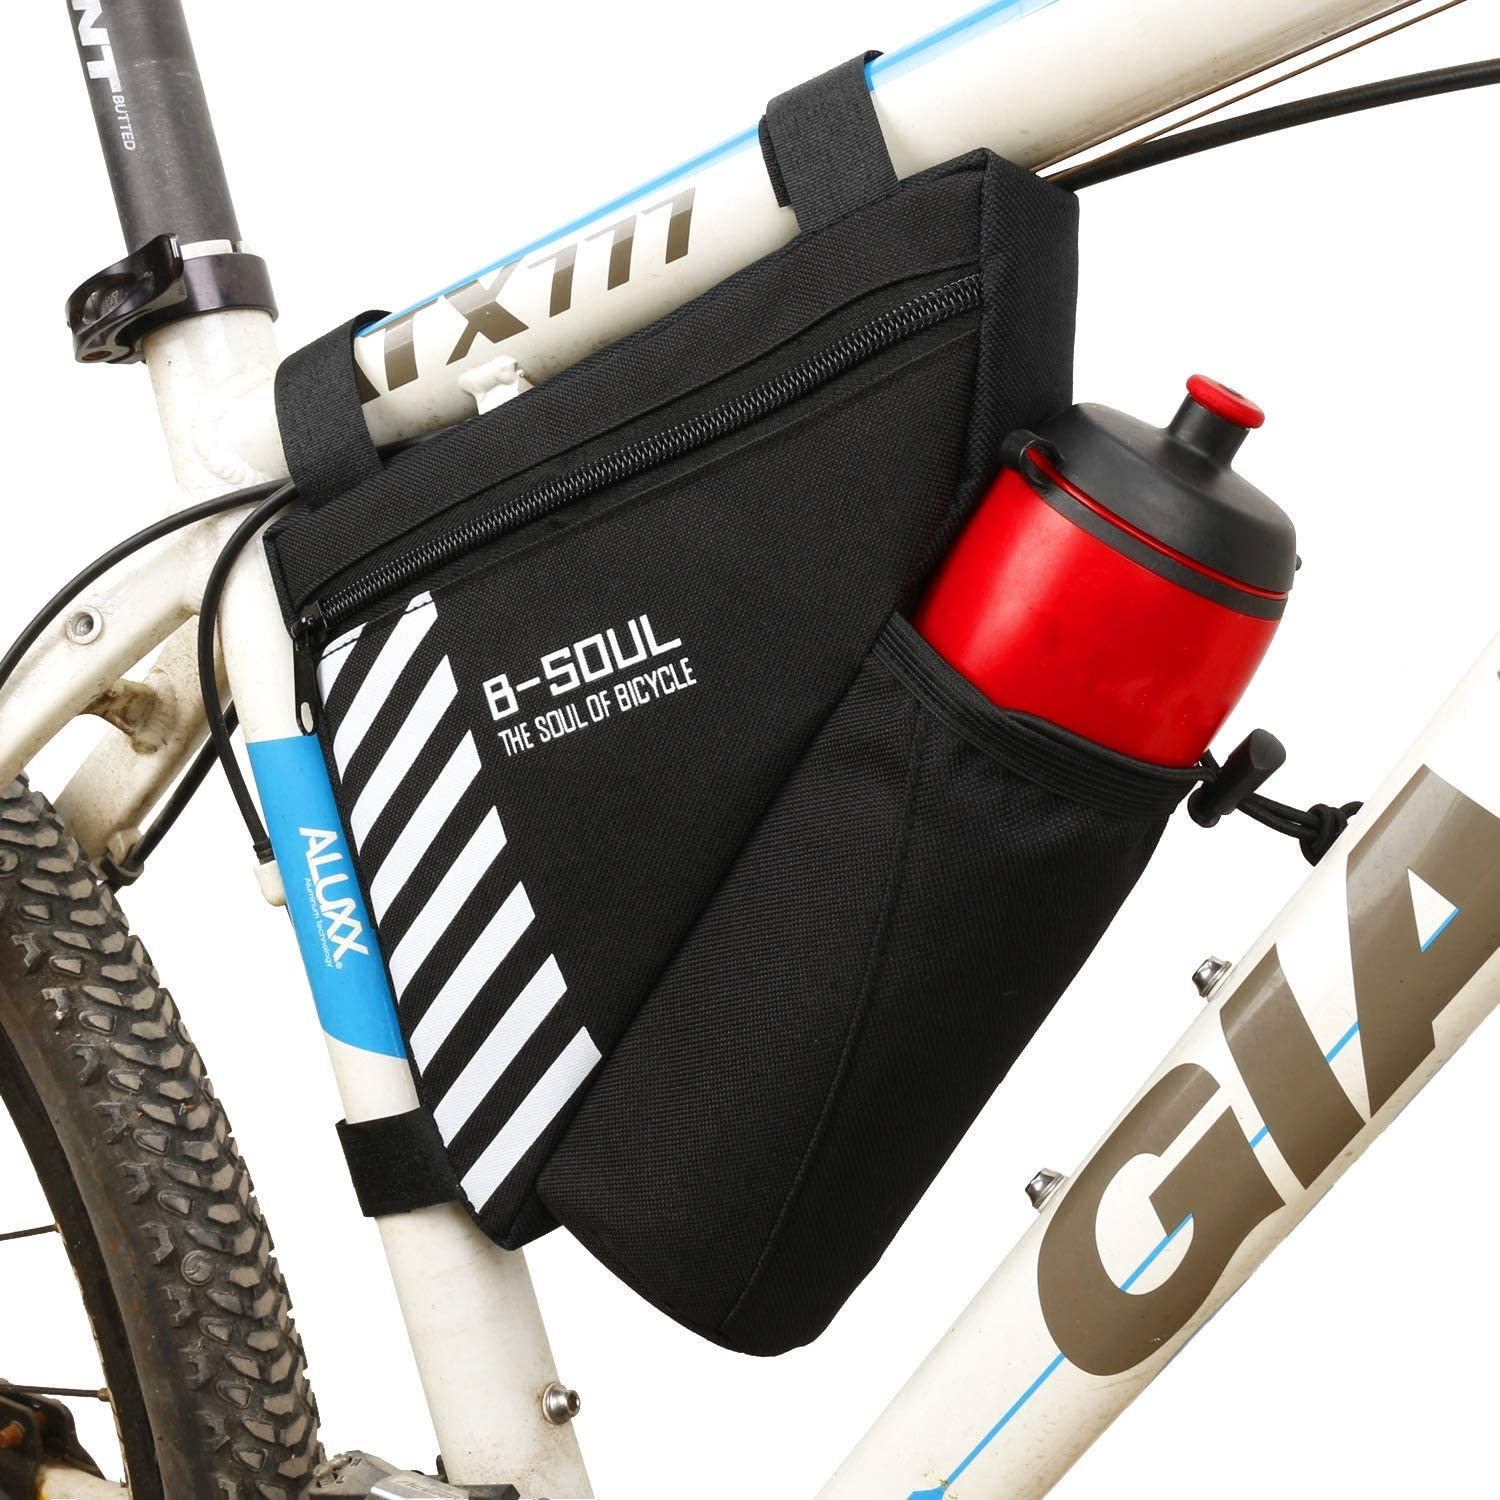 Diniiko Bike Triangle Frame Bag with Water Bottle Pouch Water Resistance Polyester Front Tube Bag Saddle Bag for Road Bicycle and Most Types of Bike